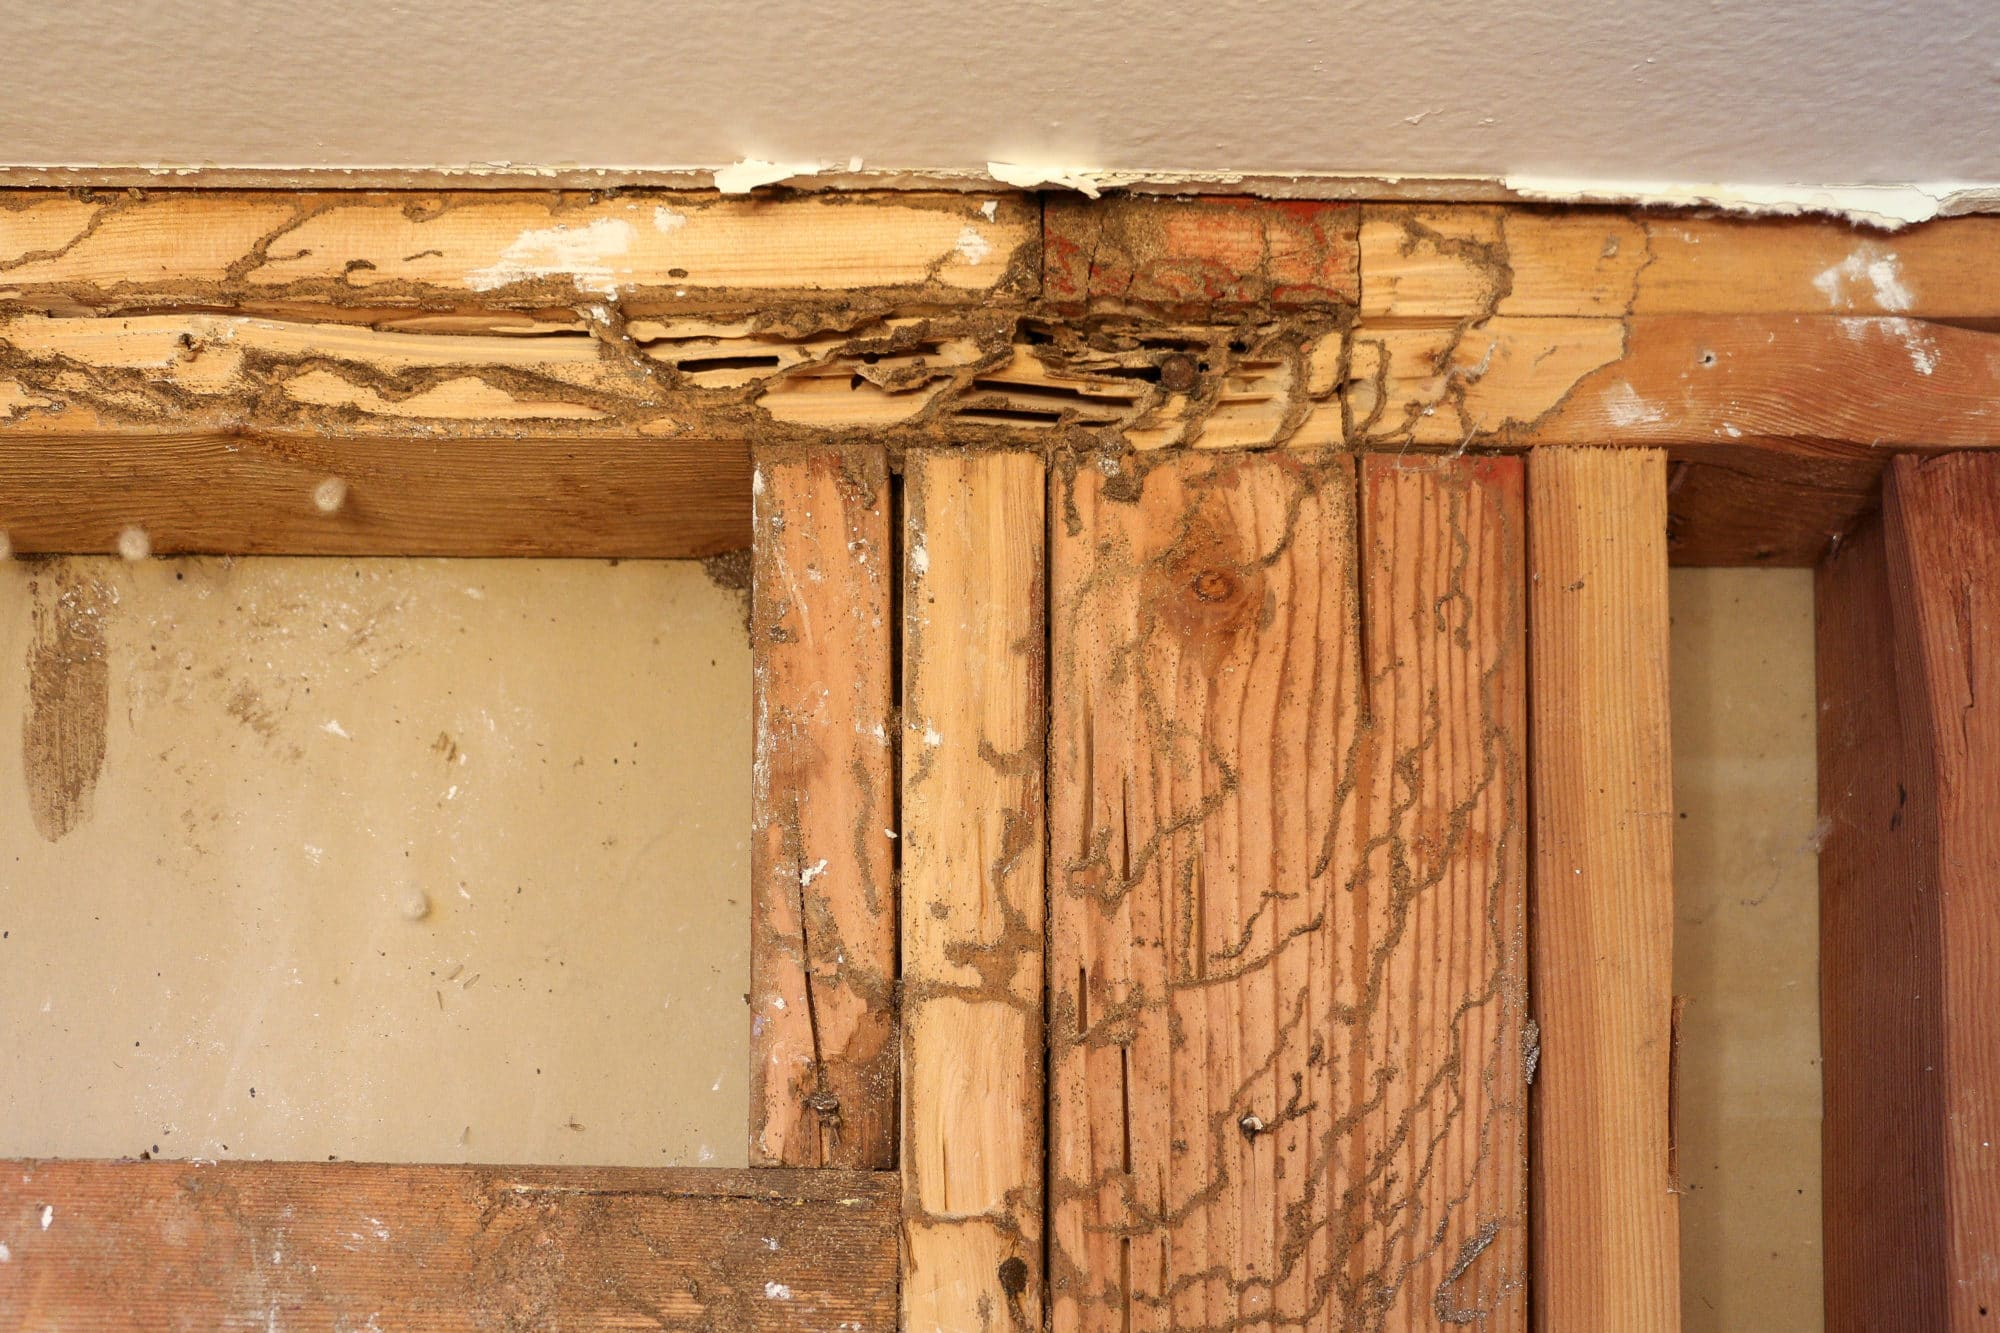 Mud tubules and tracks of subterranean termites on exposed studs in wall discovered during a Sierra Remodeling kitchen remodel.